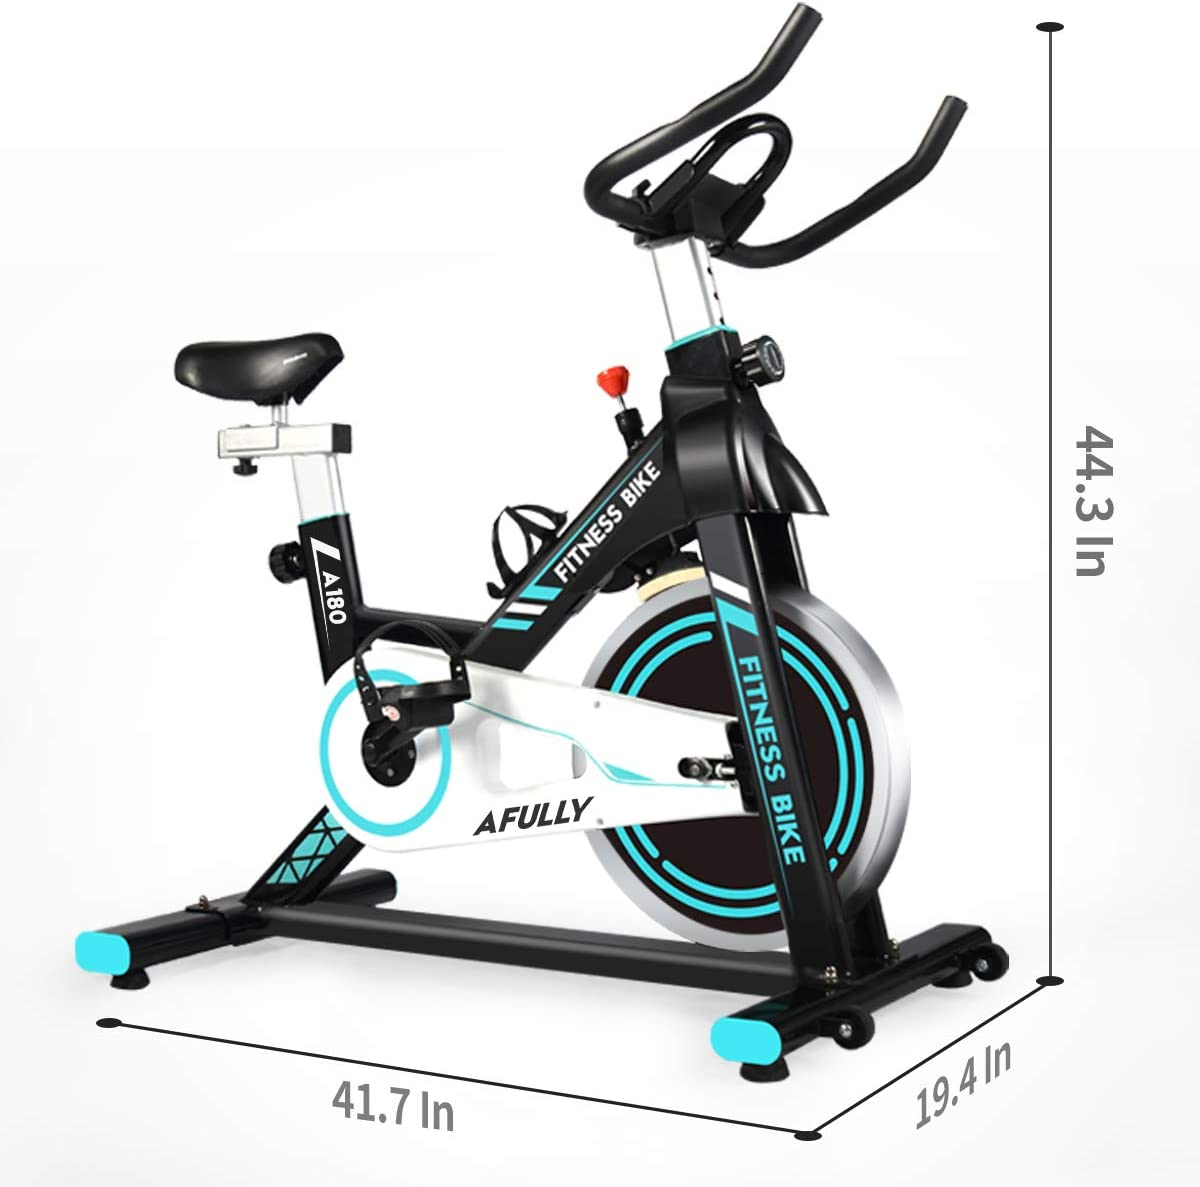 Indoor Cycling Stationary Bike Belt Drive with Adjustable Resistance Pad//Phone Holder LCD Monitor Afully Indoor Exercise Bike Comfortable Cushion Stable and Quiet for Home Cardio Workout A180